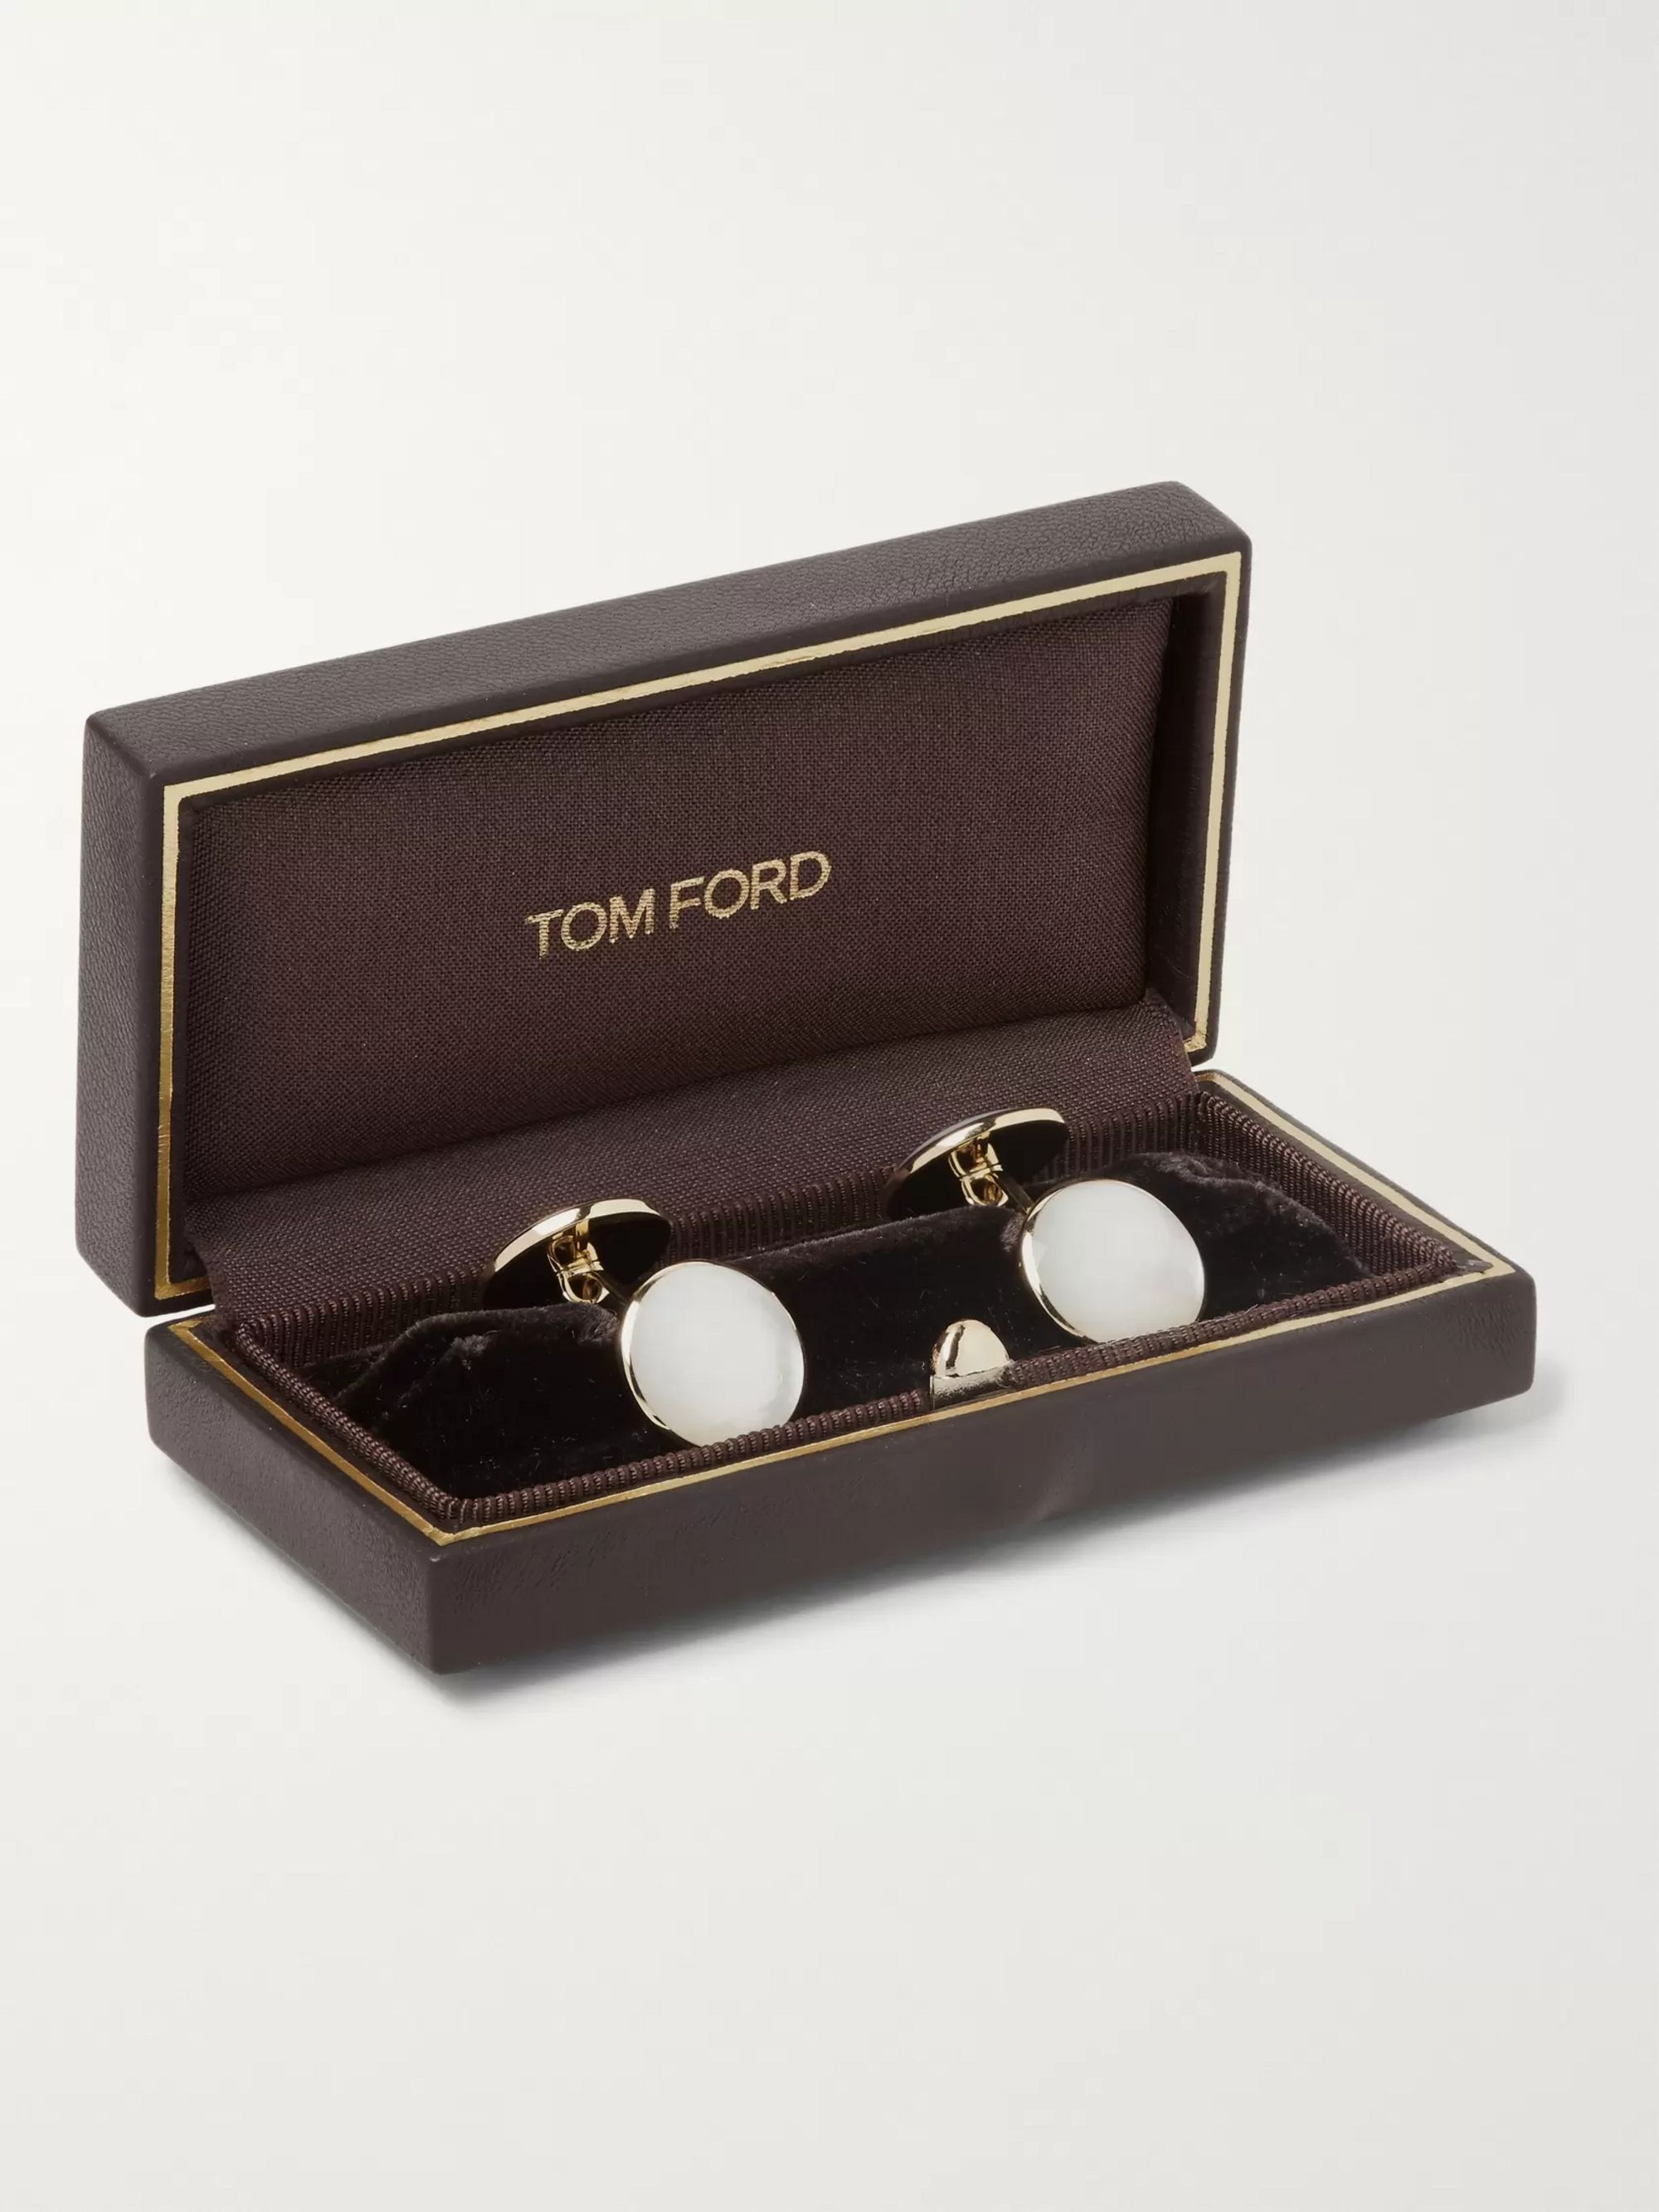 TOM FORD 18-Karat Gold Mother-of-Pearl Cufflinks